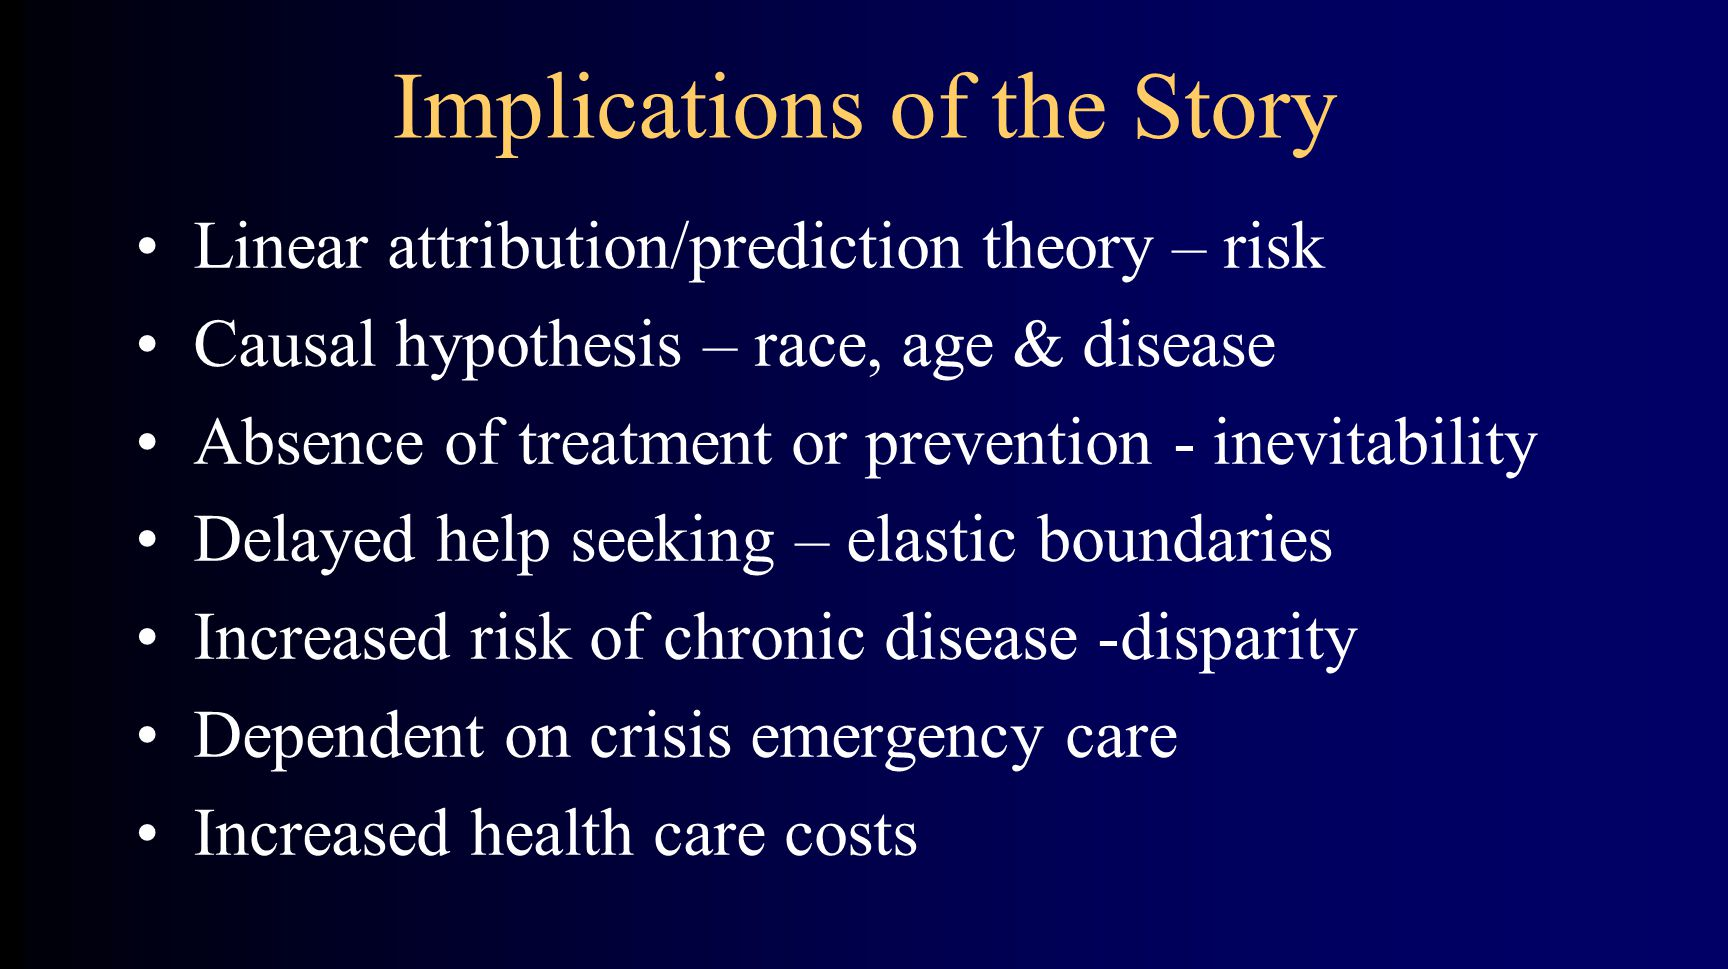 Implications of the Story Linear attribution/prediction theory – risk Causal hypothesis – race, age & disease Absence of treatment or prevention - inevitability Delayed help seeking – elastic boundaries Increased risk of chronic disease -disparity Dependent on crisis emergency care Increased health care costs